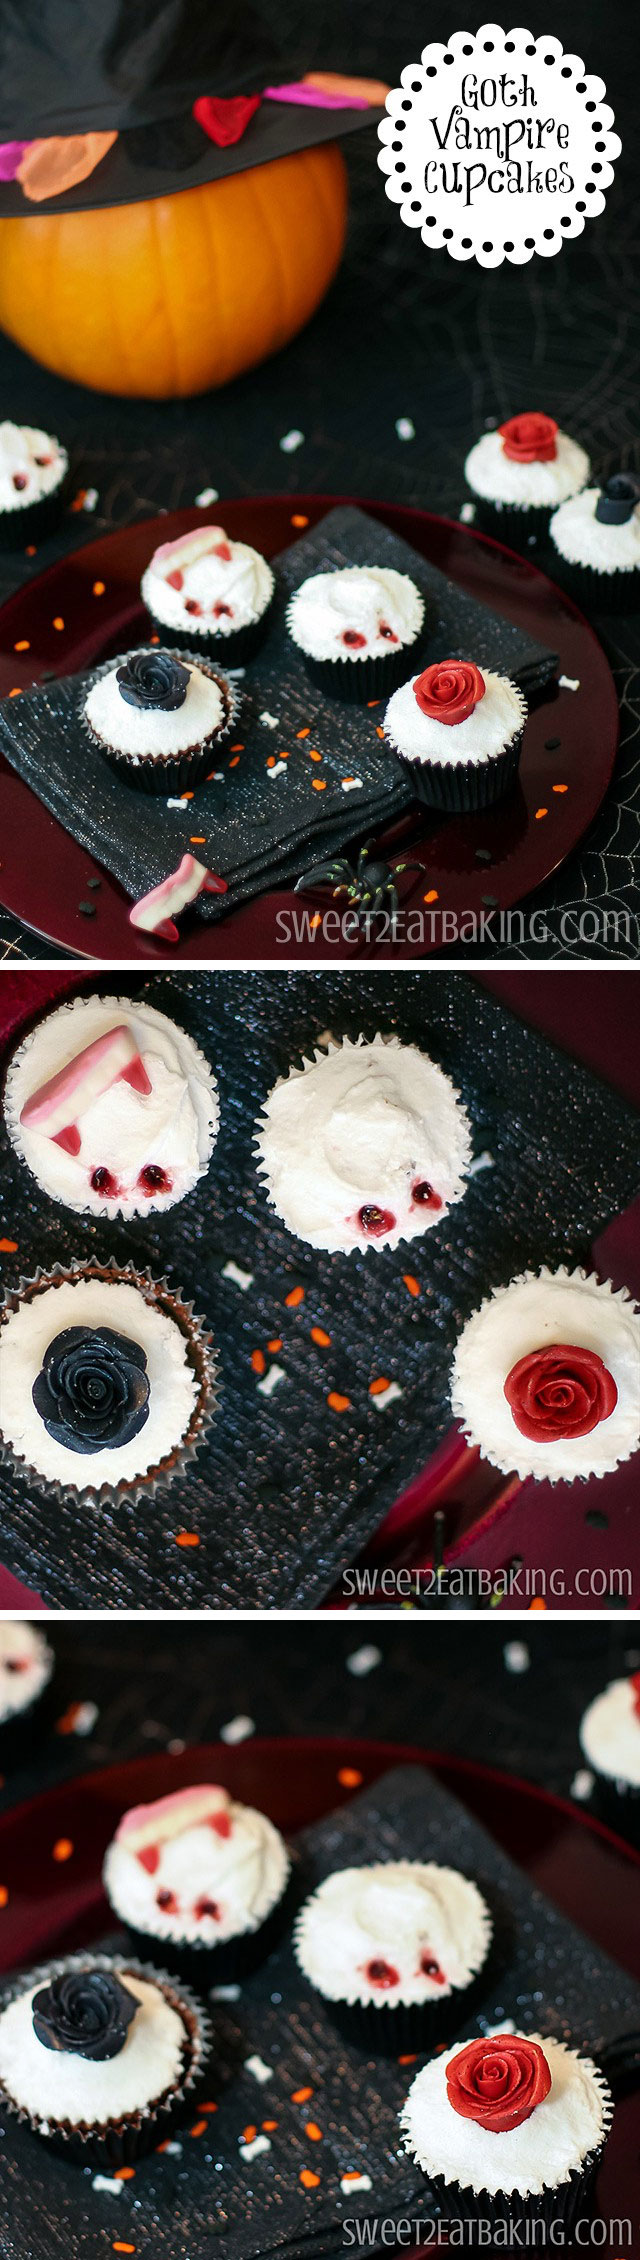 Gothic Roses and Vampire Bite Halloween Cupcakes Recipe by Sweet2EatBaking.com | Get back to goth with these Halloween themed moist Devil's cardamom chocolate cupcakes. Black and blood red roses, and bloody vampire bites make these the perfect dessert for Halloween party.